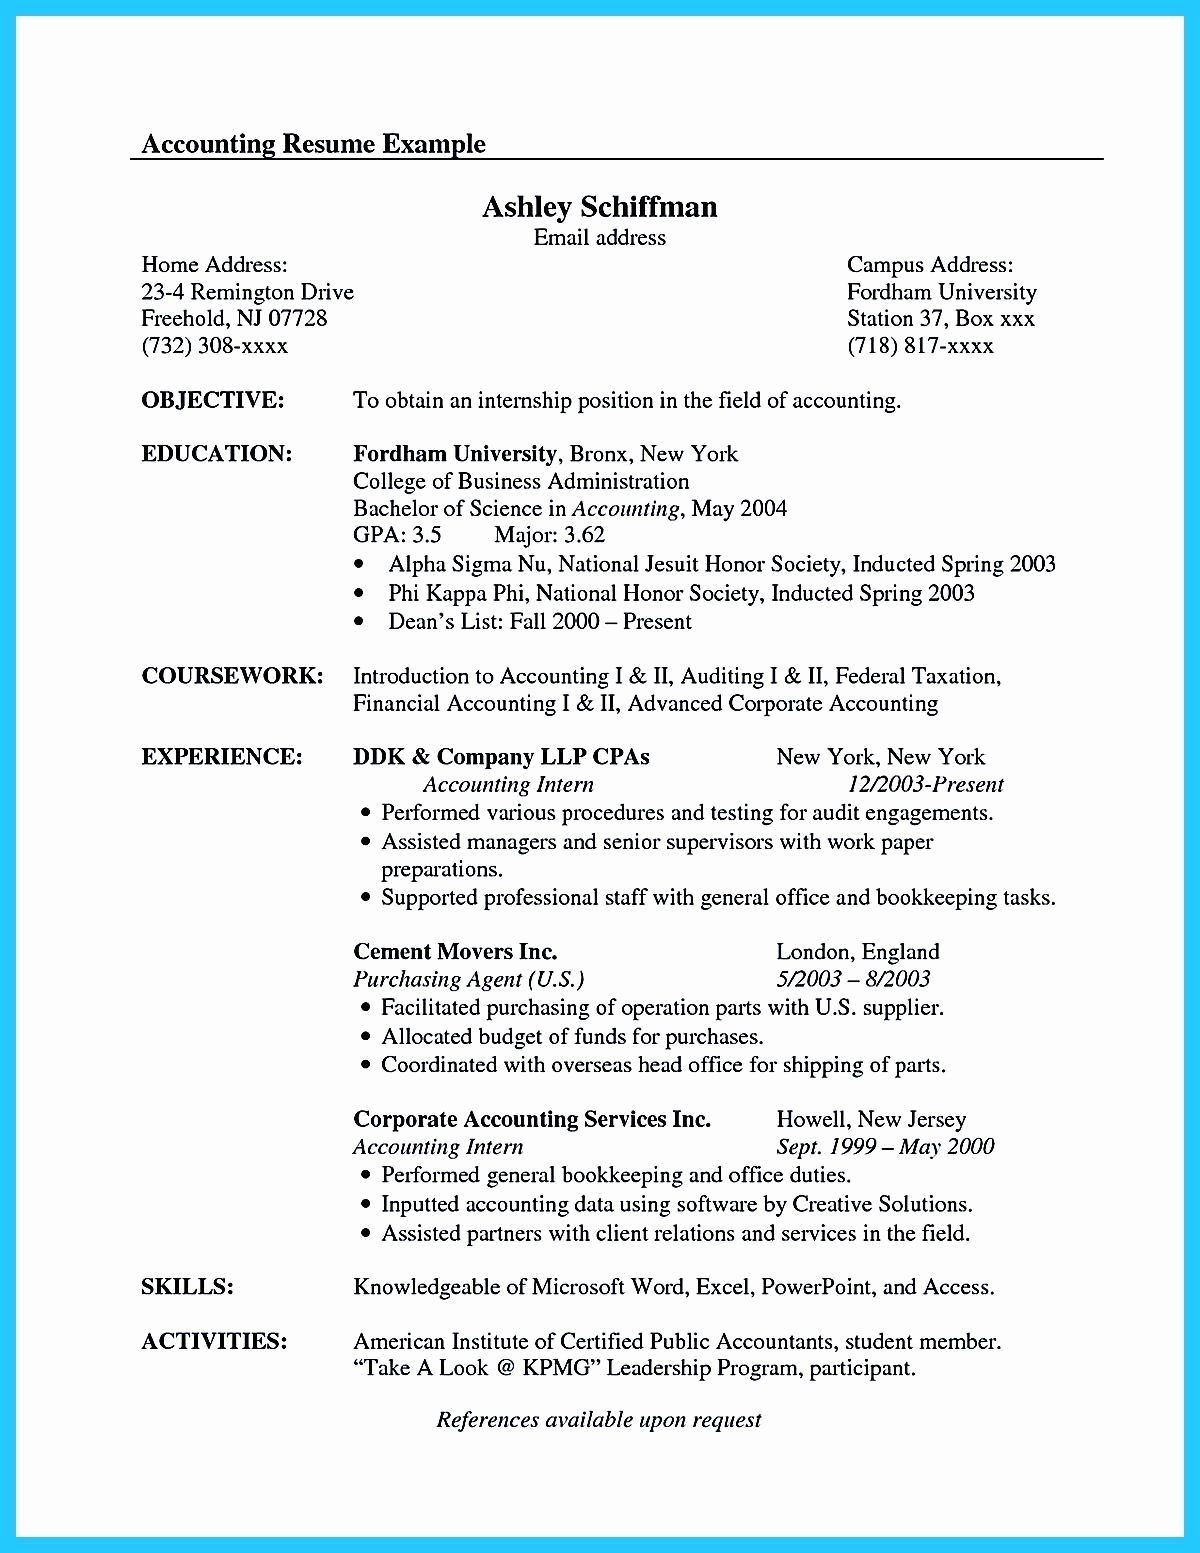 Accounting Internship Resume Sample Awesome 30 Accounting